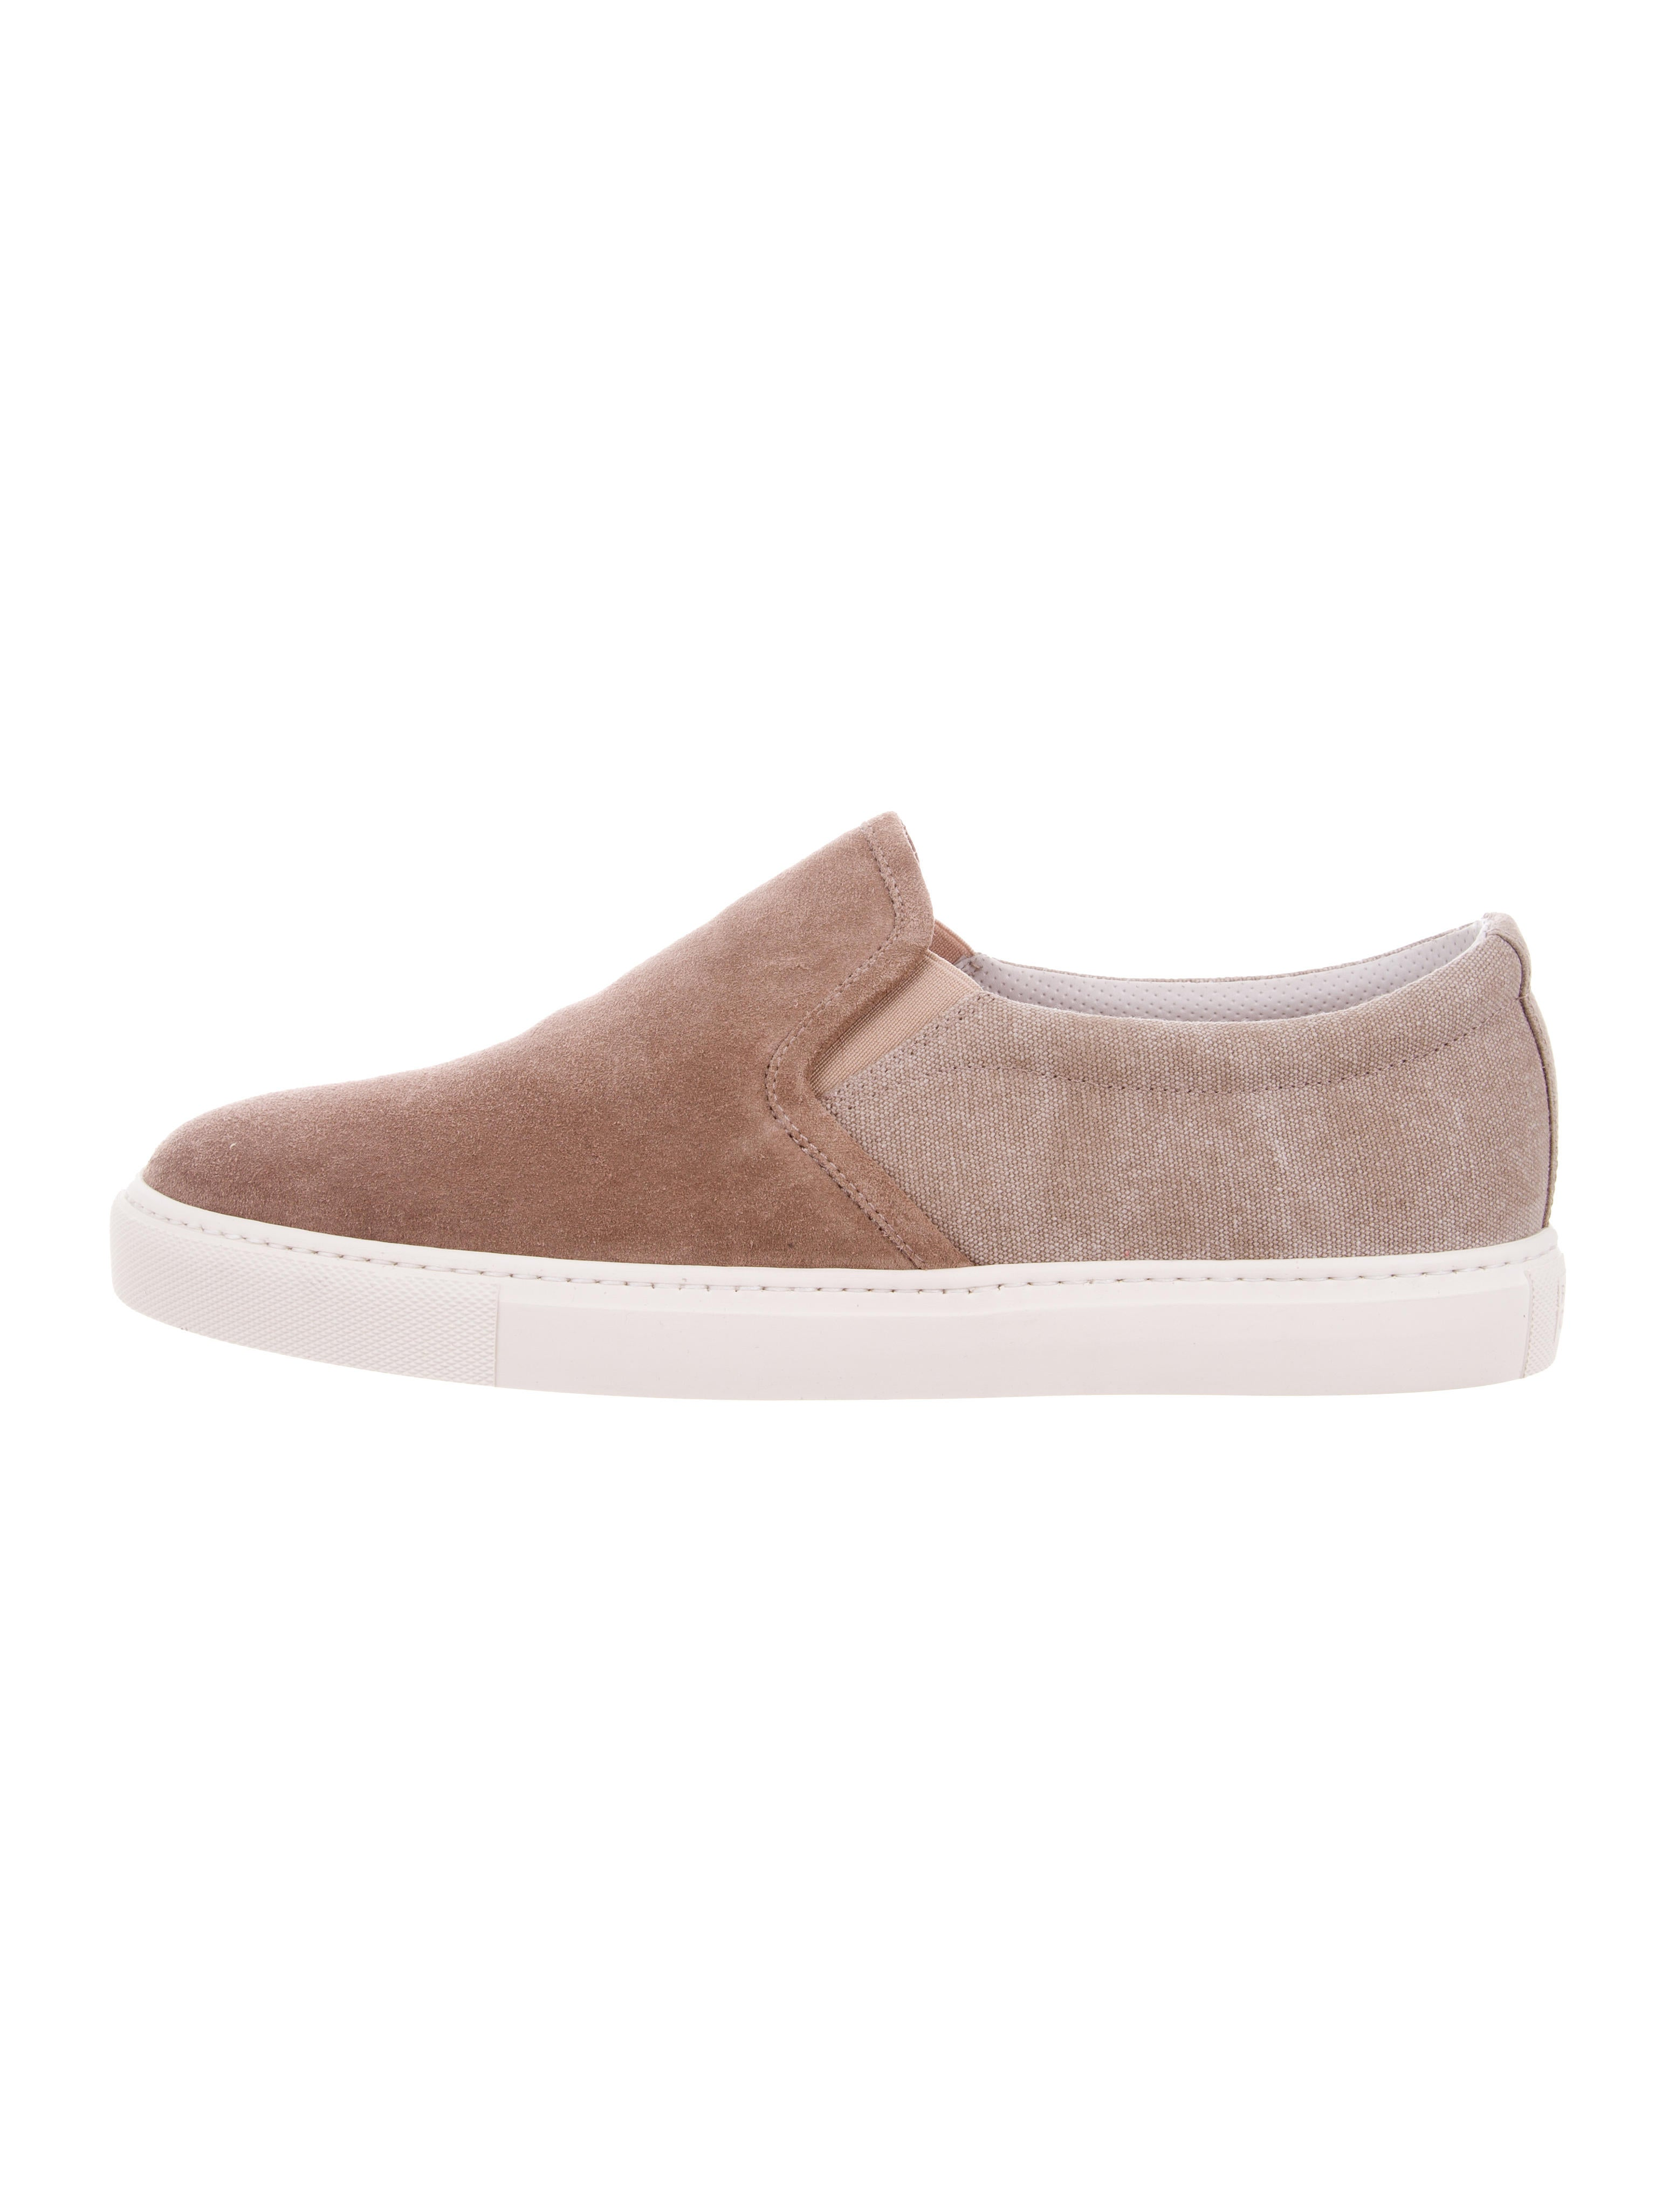 Brunello Cucinelli Suede Slip-On Sneakers pay with visa cheap price QqD89eB7